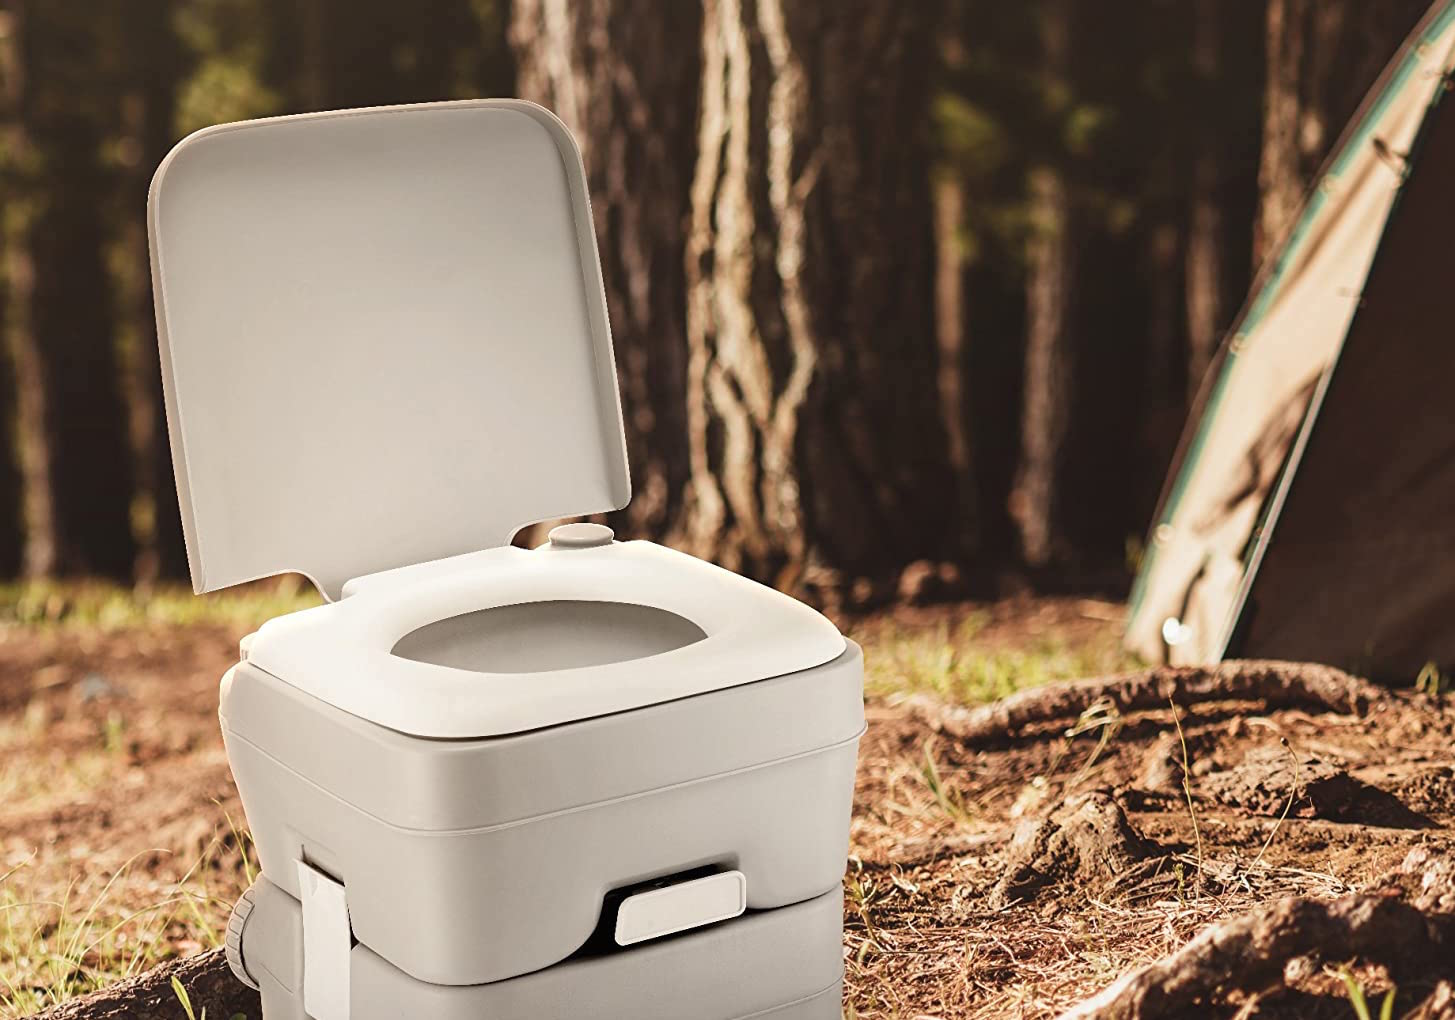 Portable Camp Toilets – What Options Do You Have?